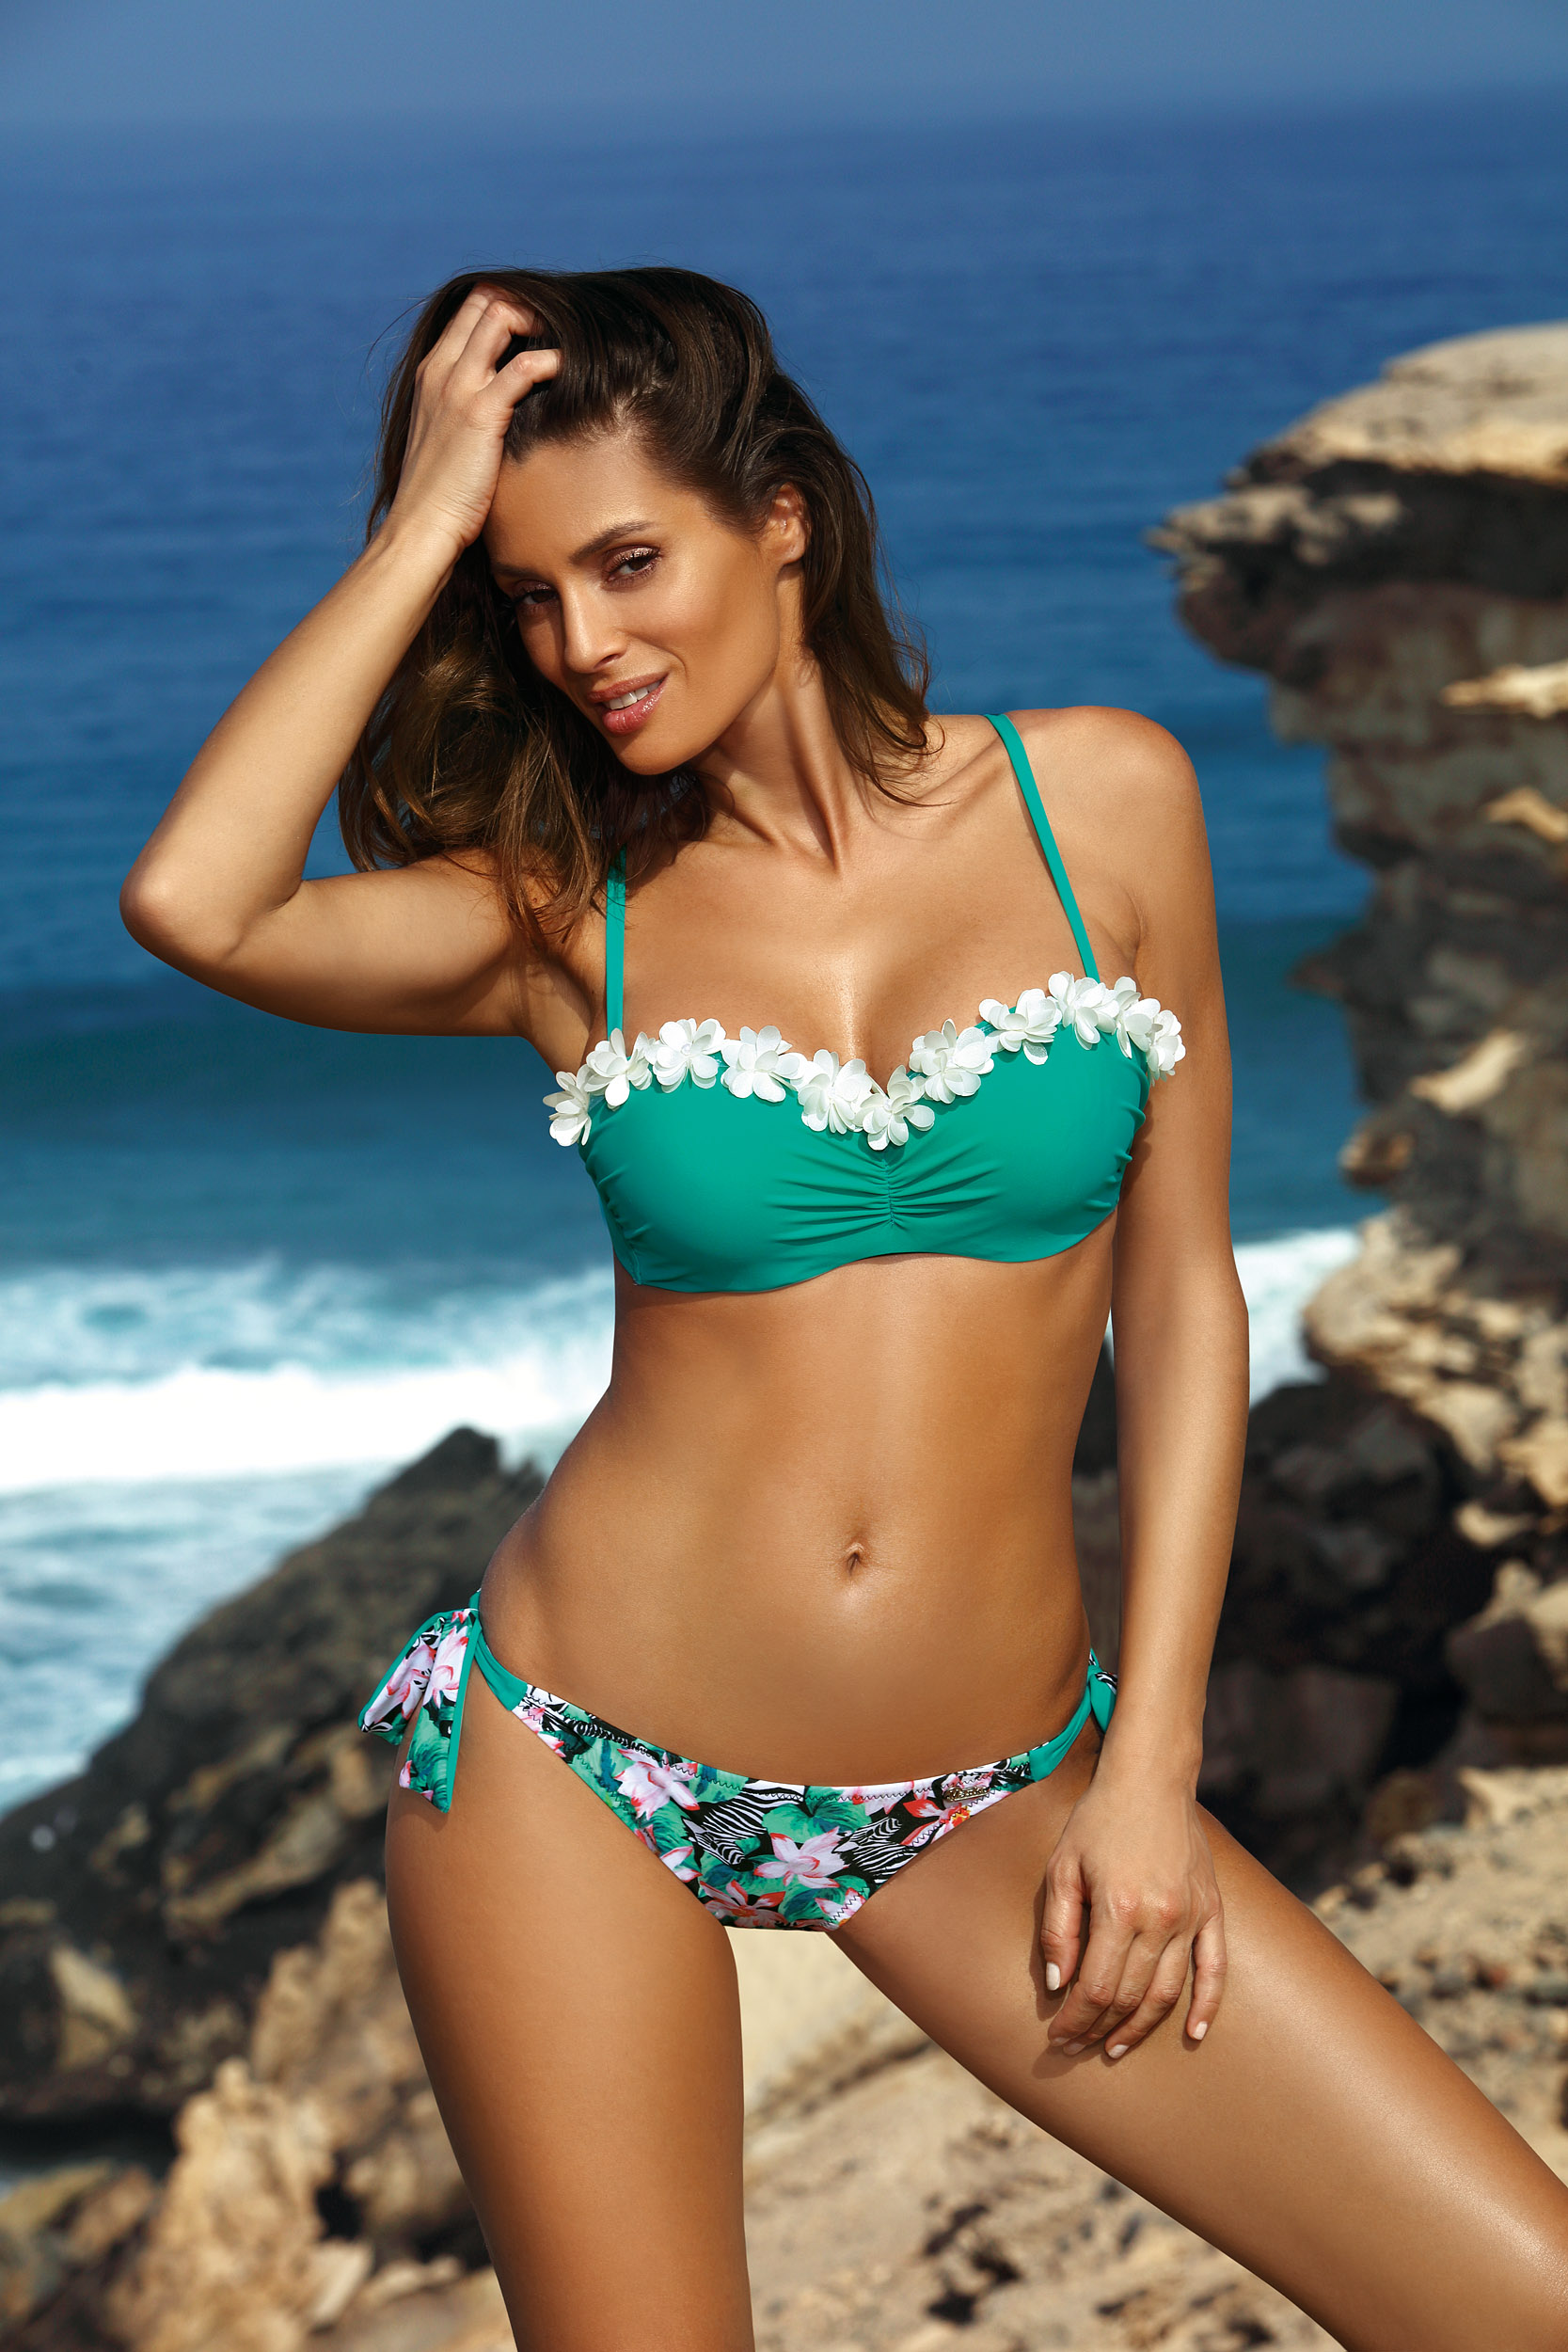 Green swimsuit 2 pieces with balconette bra with floral details brazilian bikinis